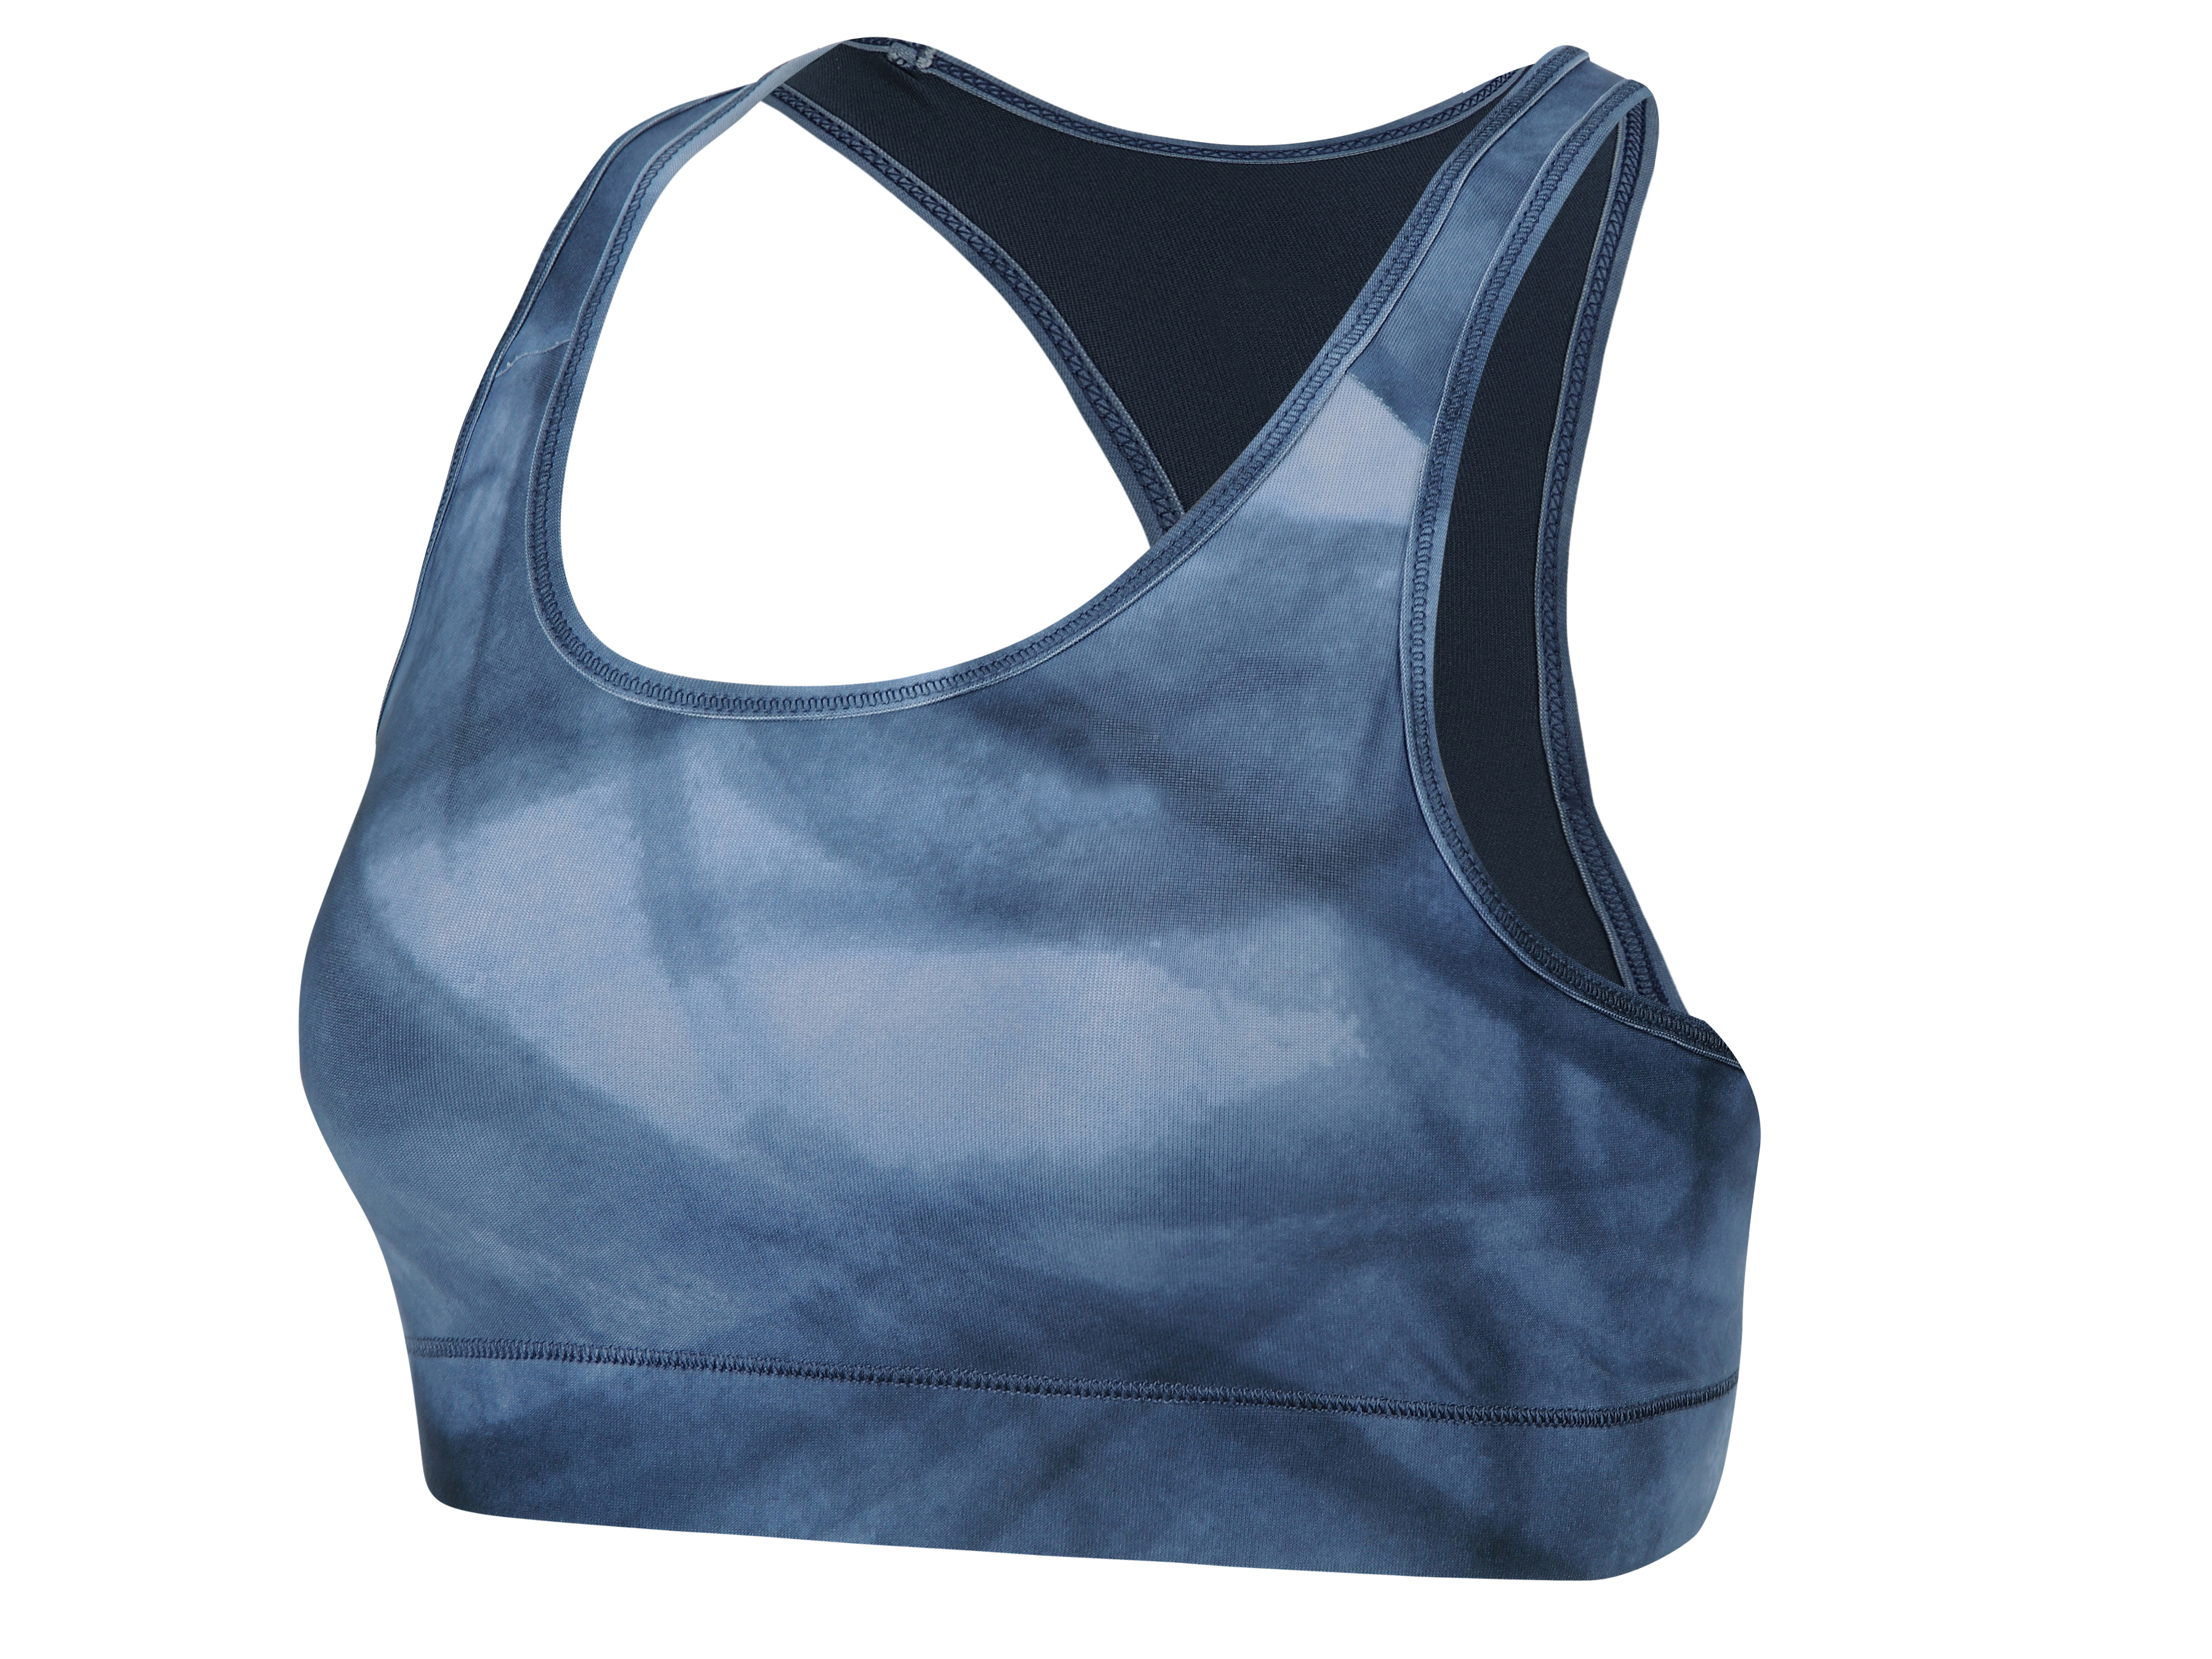 Women's yoga printed sport bra